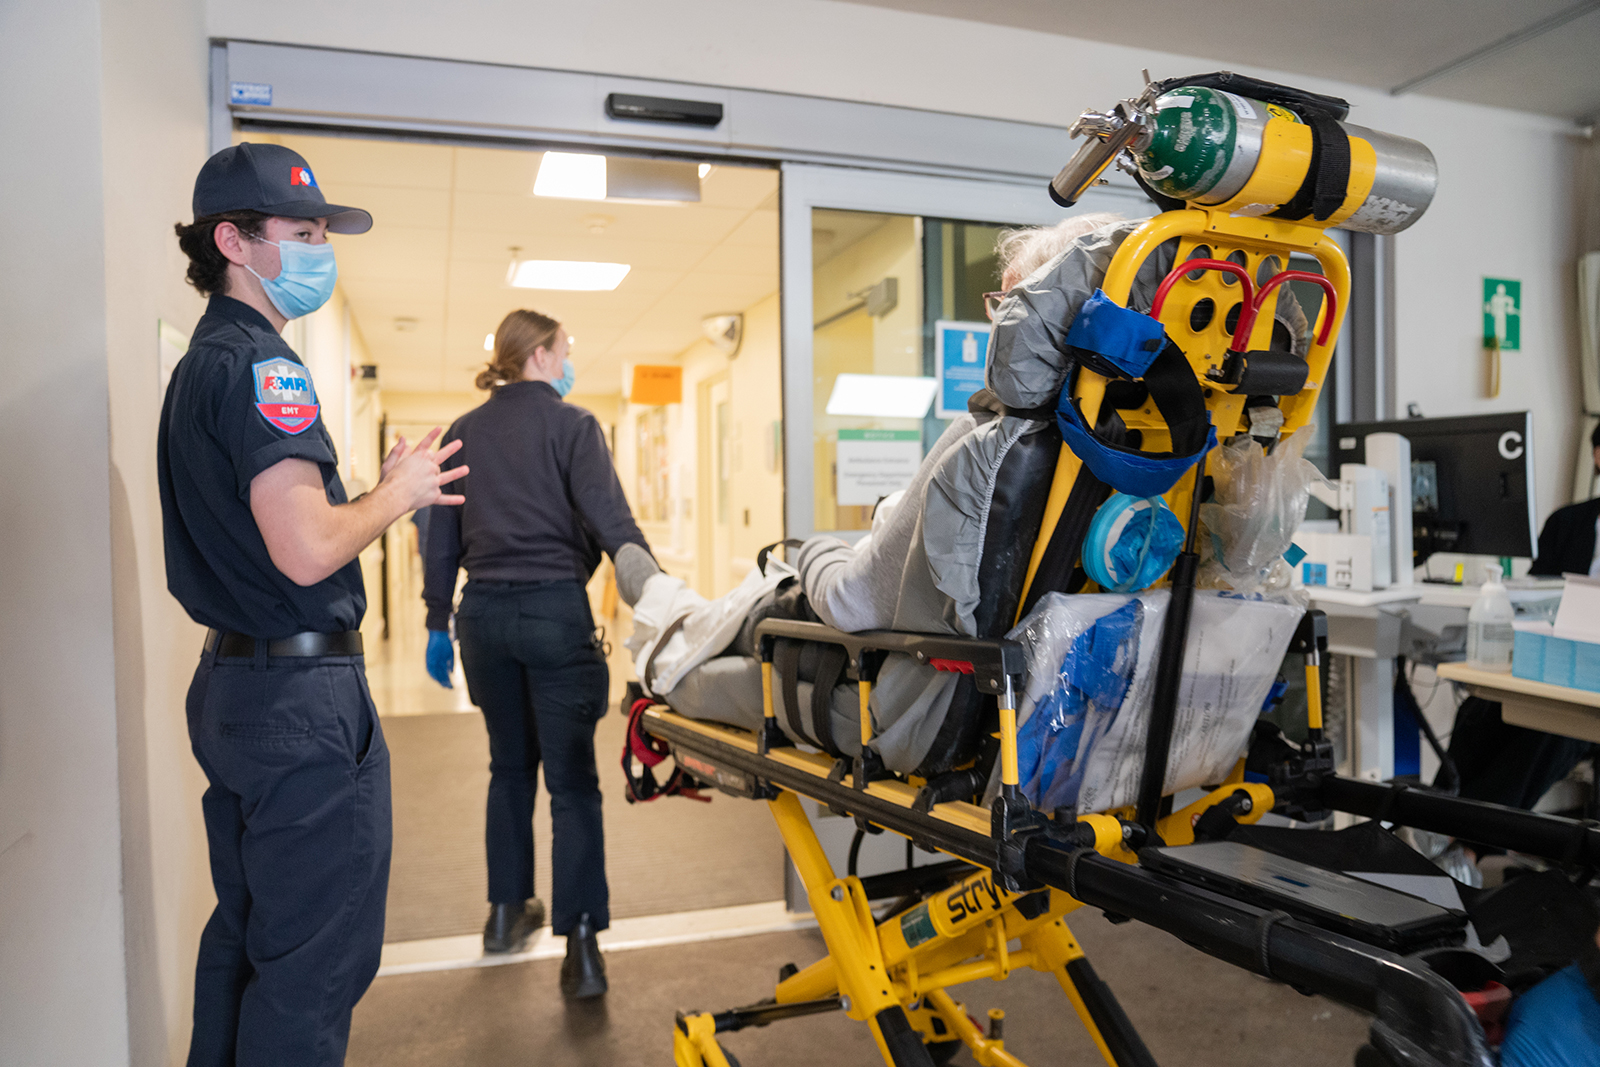 Paramedics arrive with a Covid-19 patient at the emergency department of Sharp Memorial Hospital in San Diego, California, on January 28.